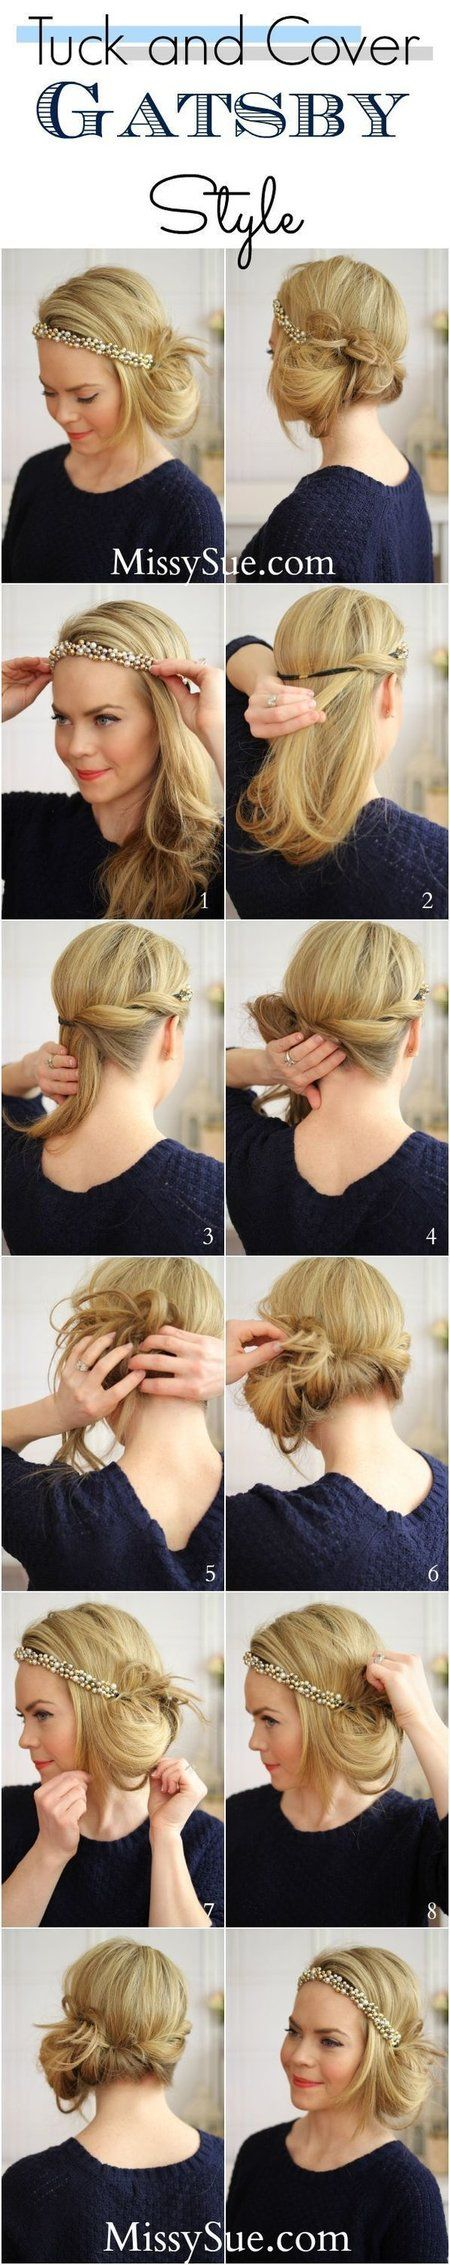 MissySue.com  Pretty hair tutorial with headband! It's simple, messy (my favorite look) and a little boho.